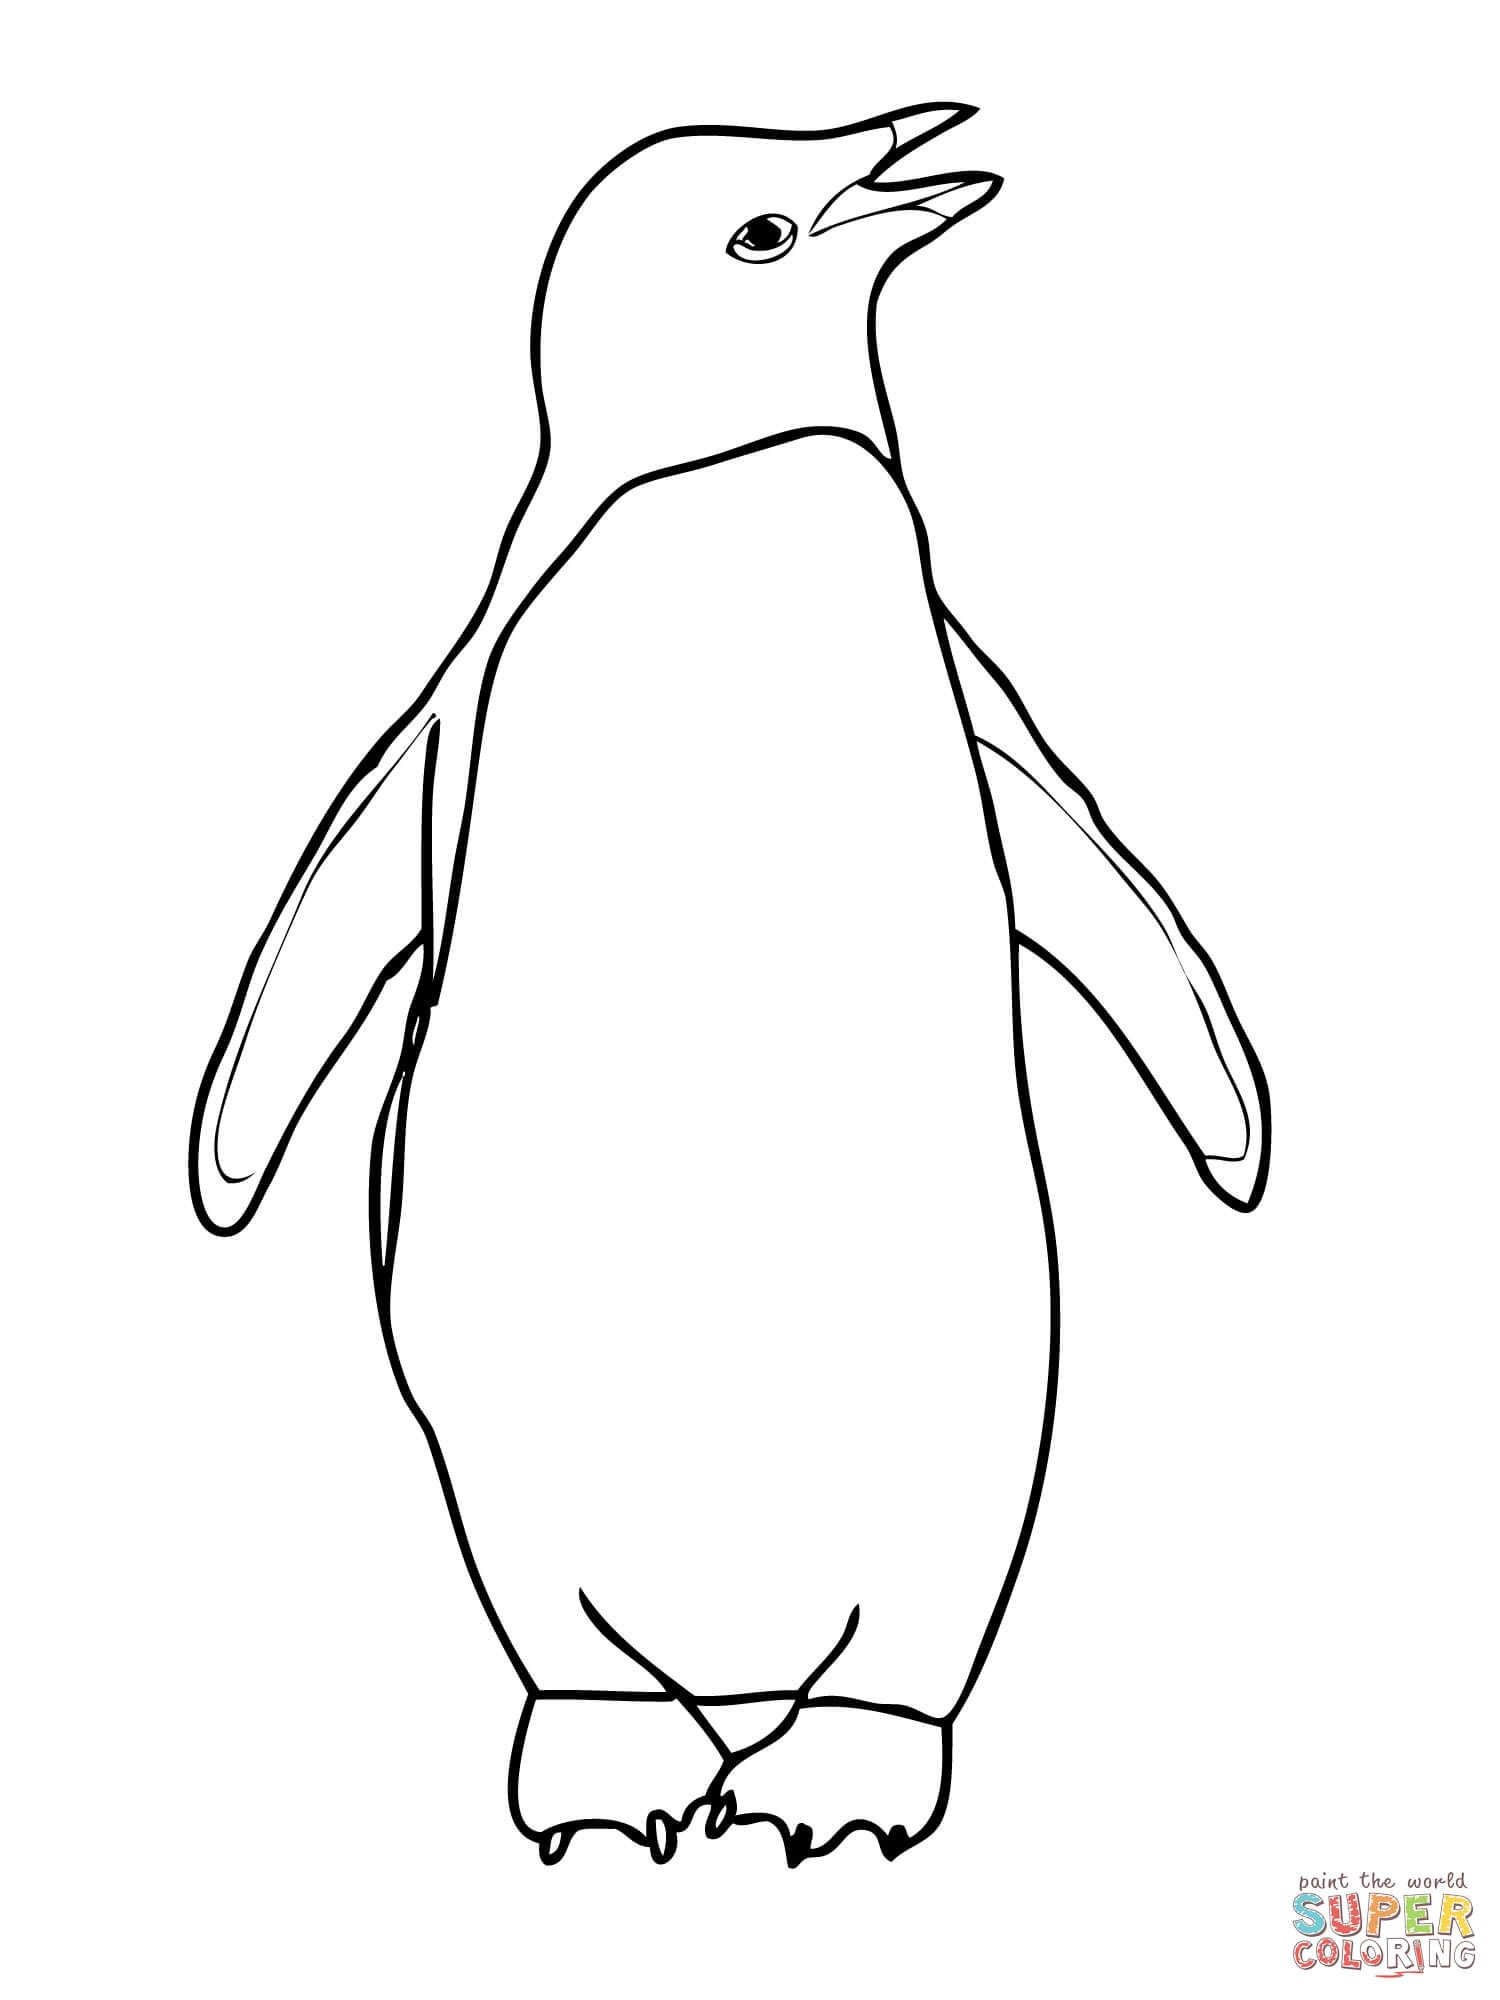 Adelie Penguin Coloring Page